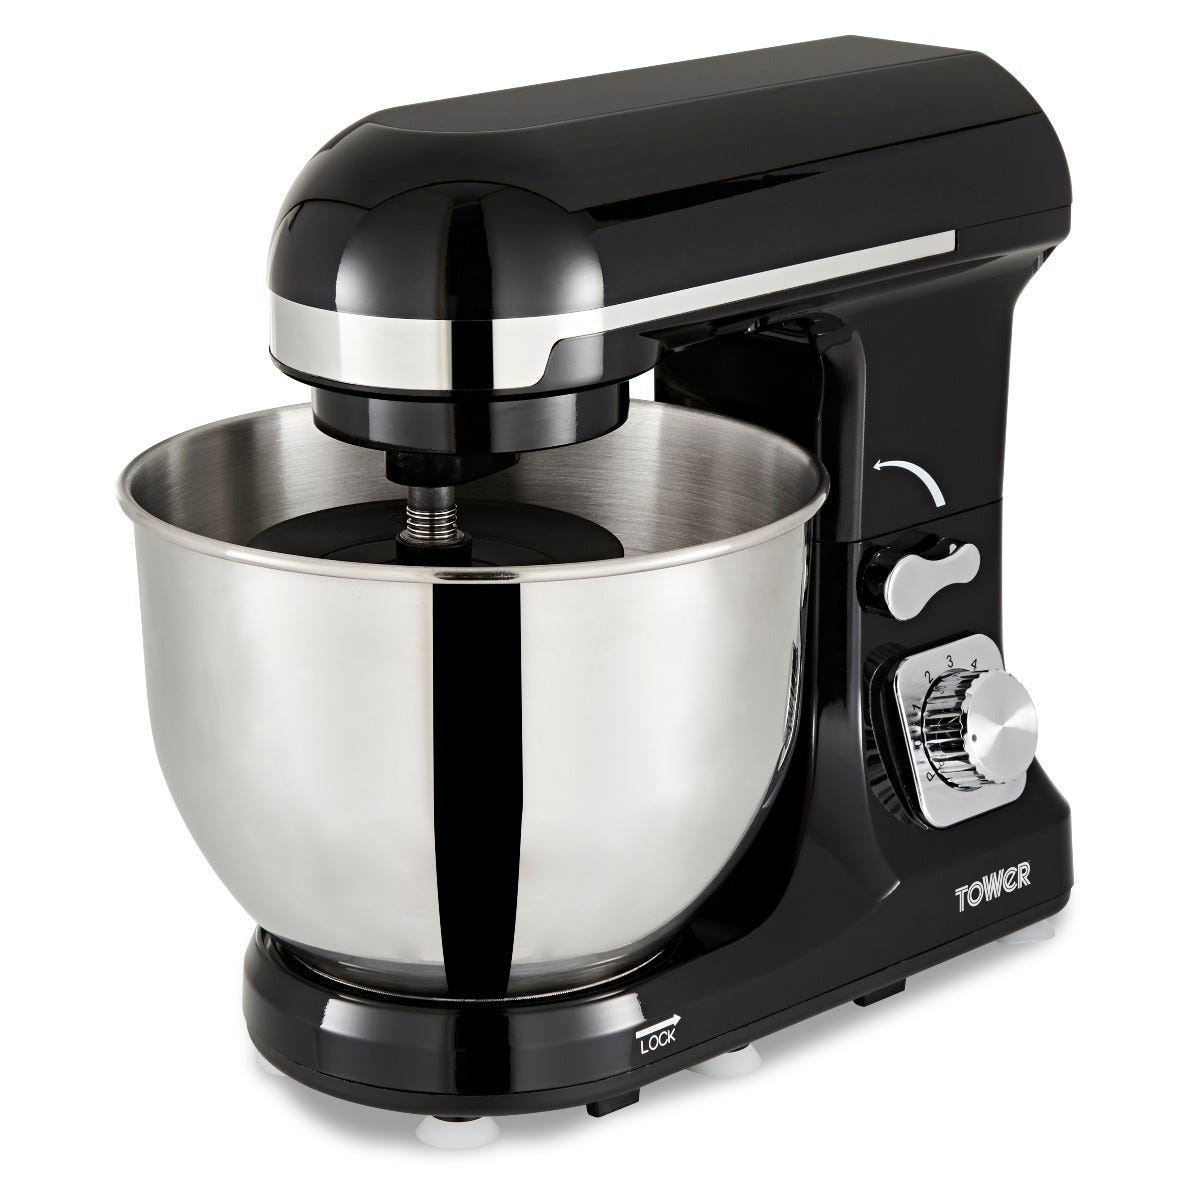 Tower T12033 1000W Stand Mixer with 5L Stainless - Black